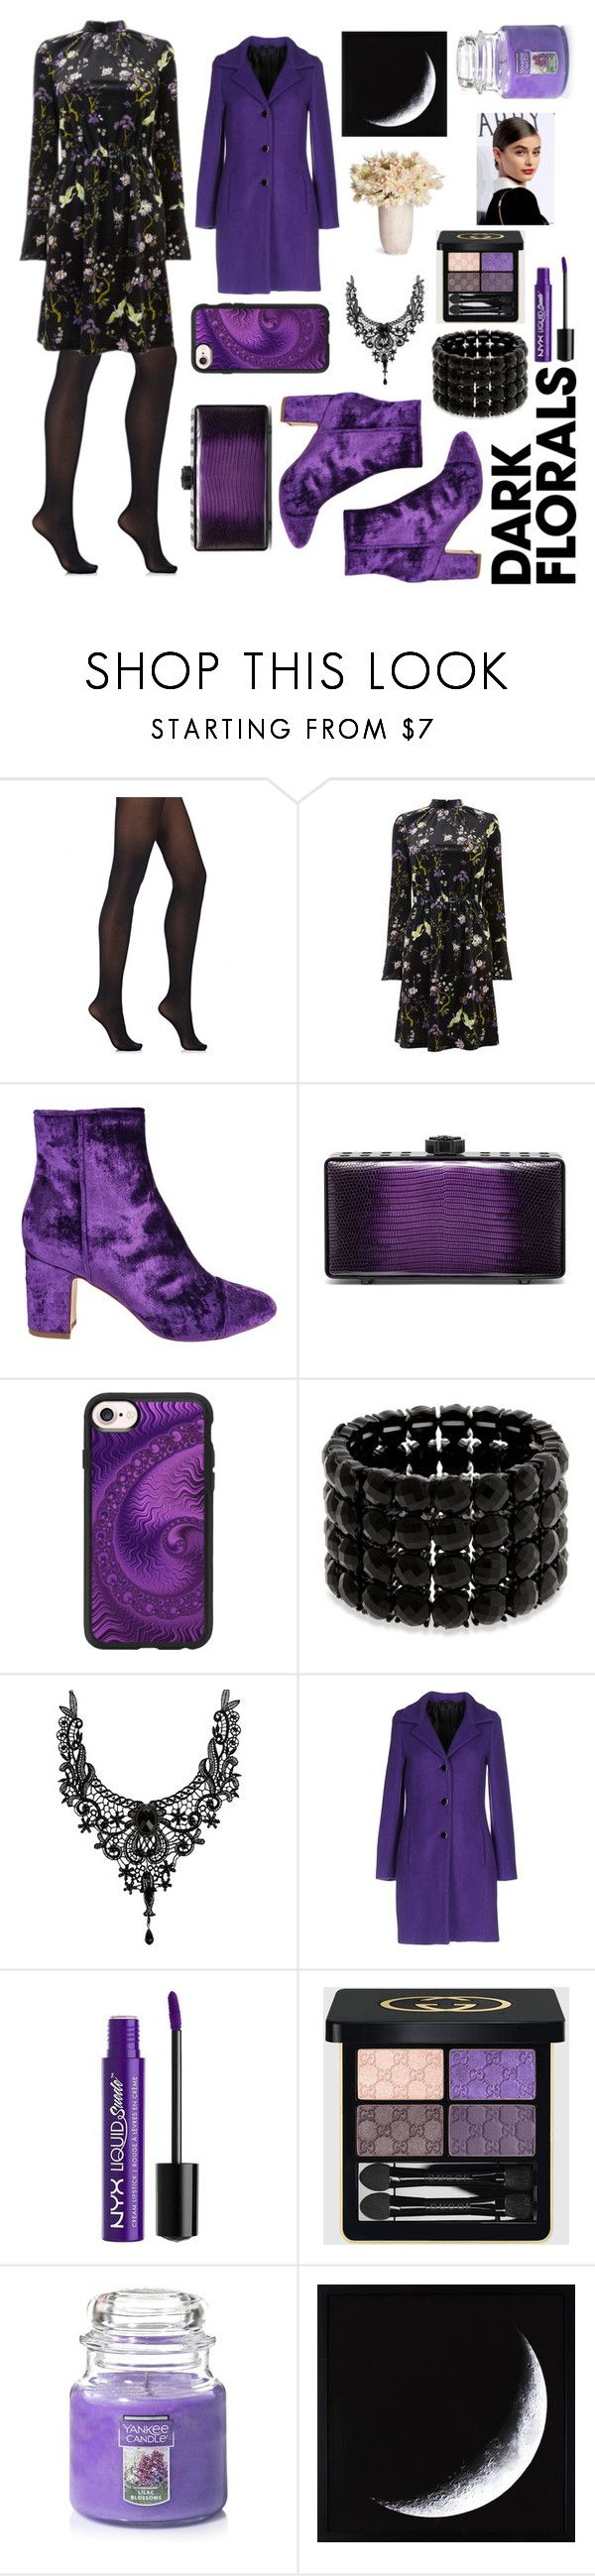 """""""dark florals"""" by majafashionlover ❤ liked on Polyvore featuring Wolford, Warehouse, Polly Plume, Bougeotte, Casetify, Erica Lyons, Carla G., Charlotte Russe, Gucci and Yankee Candle"""